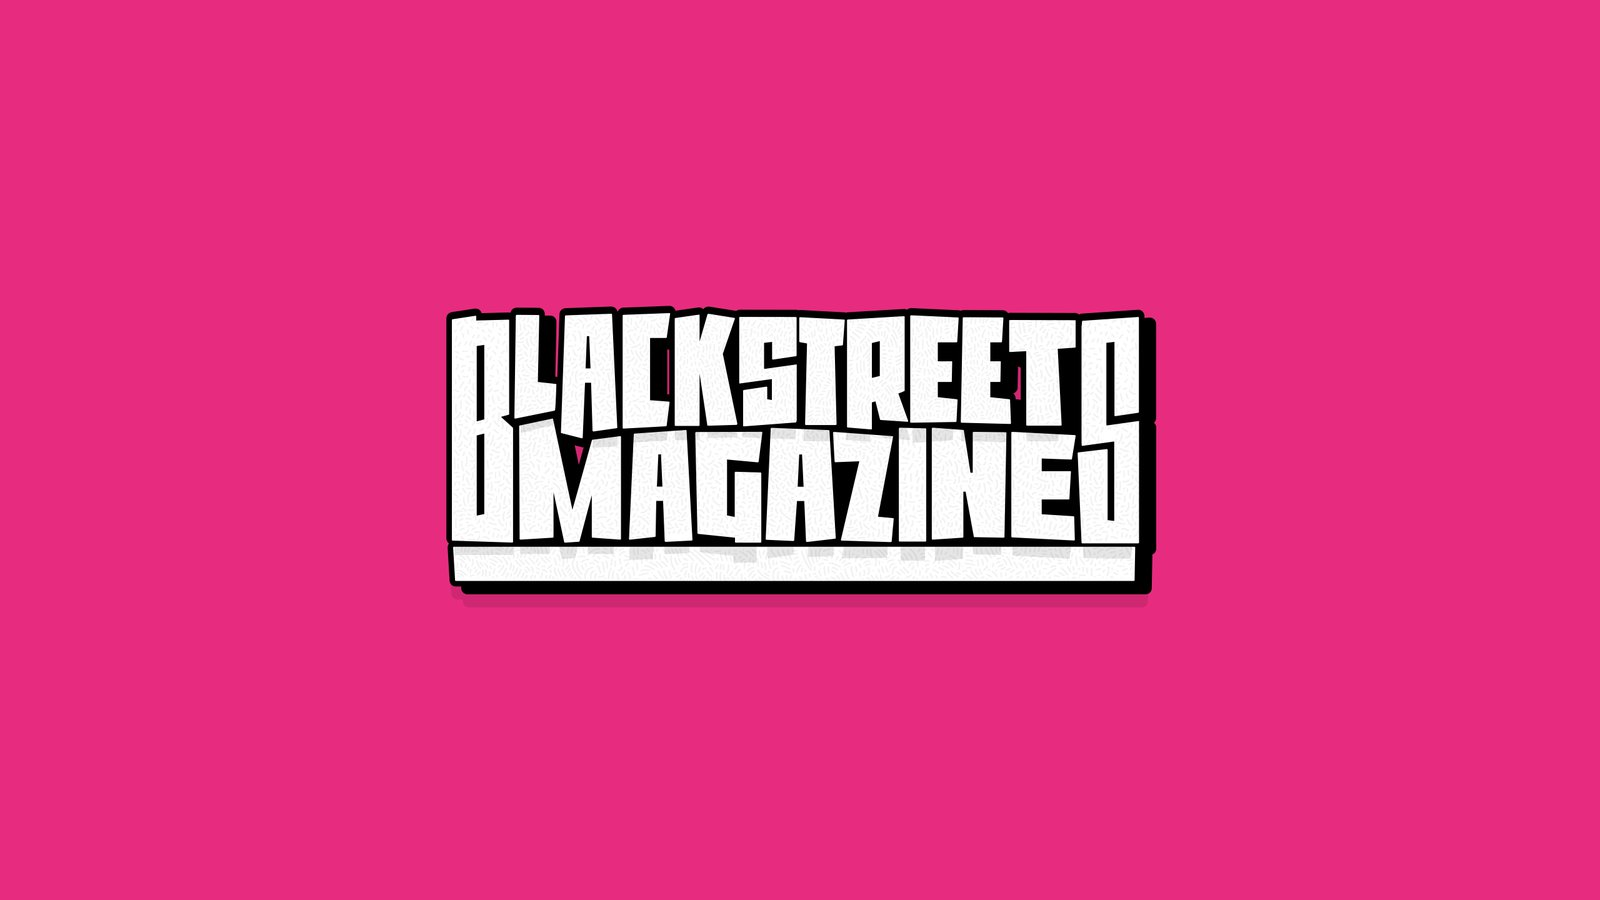 Blackstreets Magazine - New Sticker Yeah!